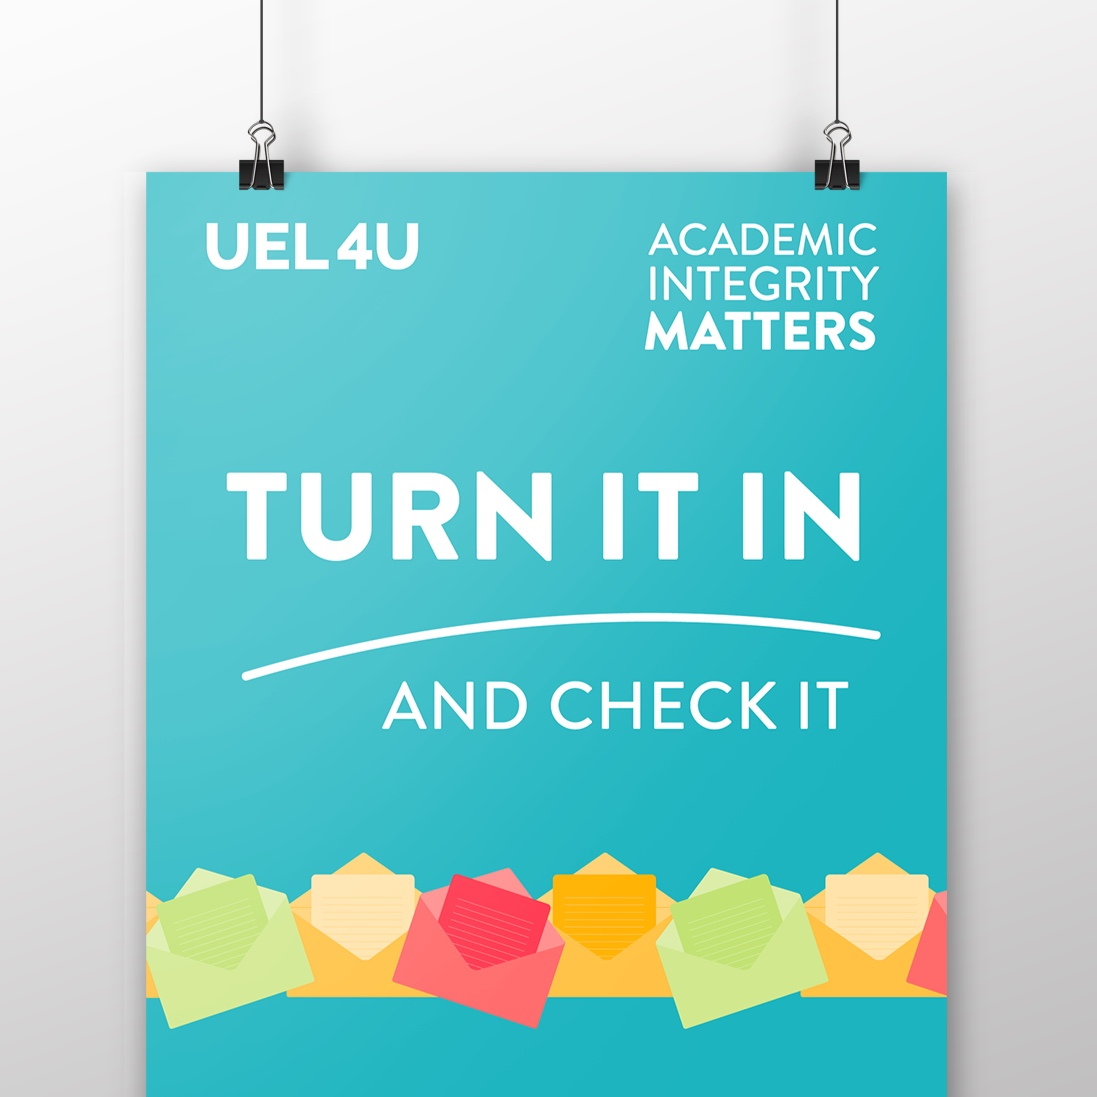 PosterMockup-UEL-AcademicIntegrity.png